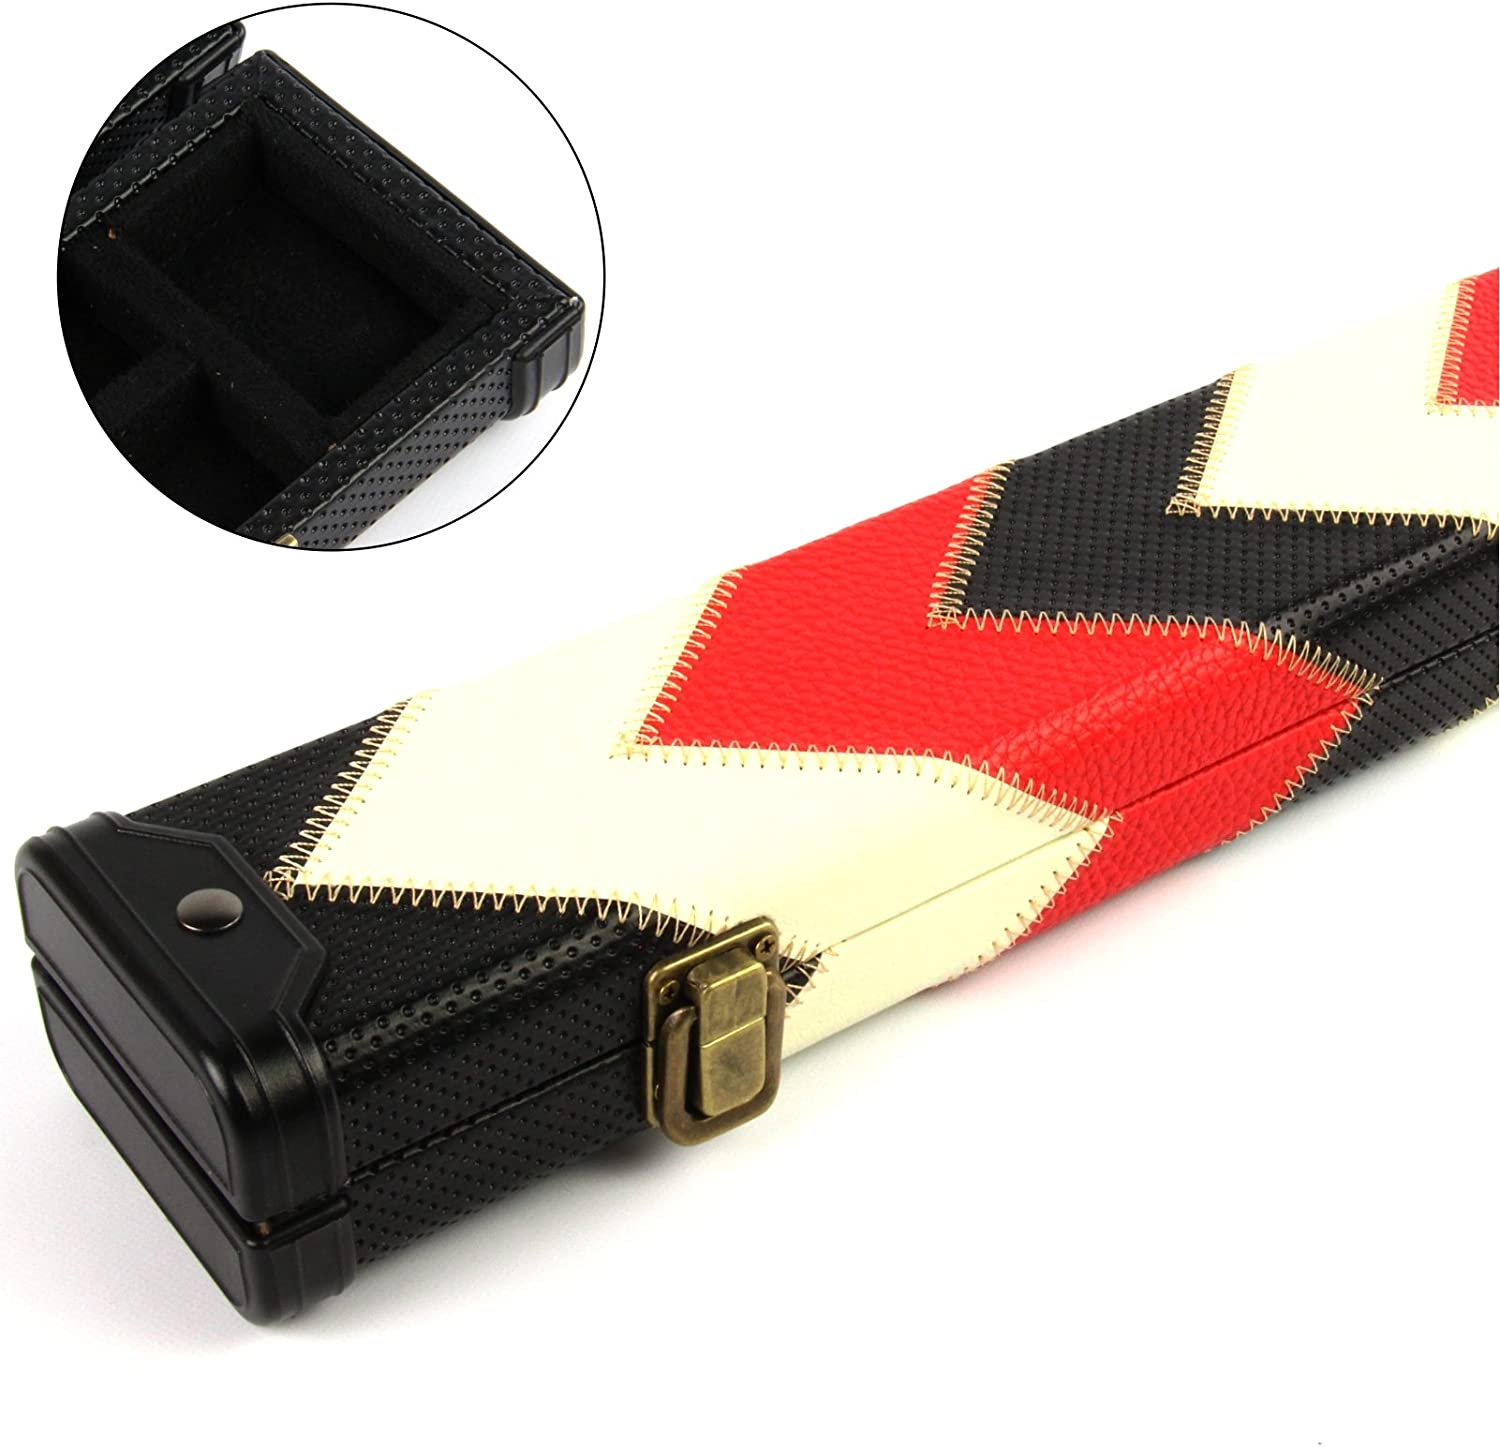 Funky Chalk Luxury Red White & Black 2pc Pool Snooker Cue Case-For ...